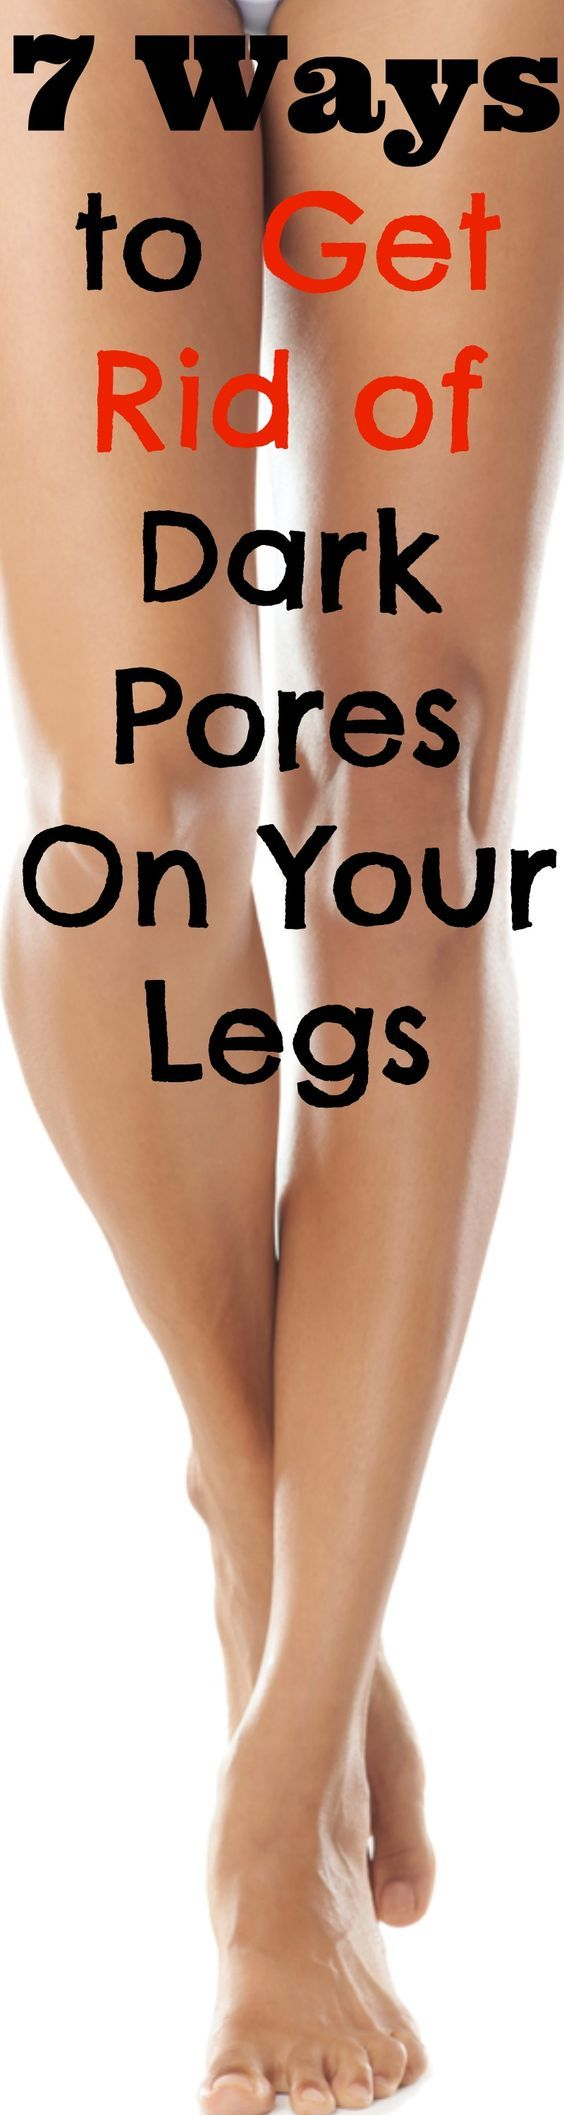 7 Ways to Get Rid of Dark Pores On Your Legs 7 Ways to Get Rid of Dark Pores On Your Legs